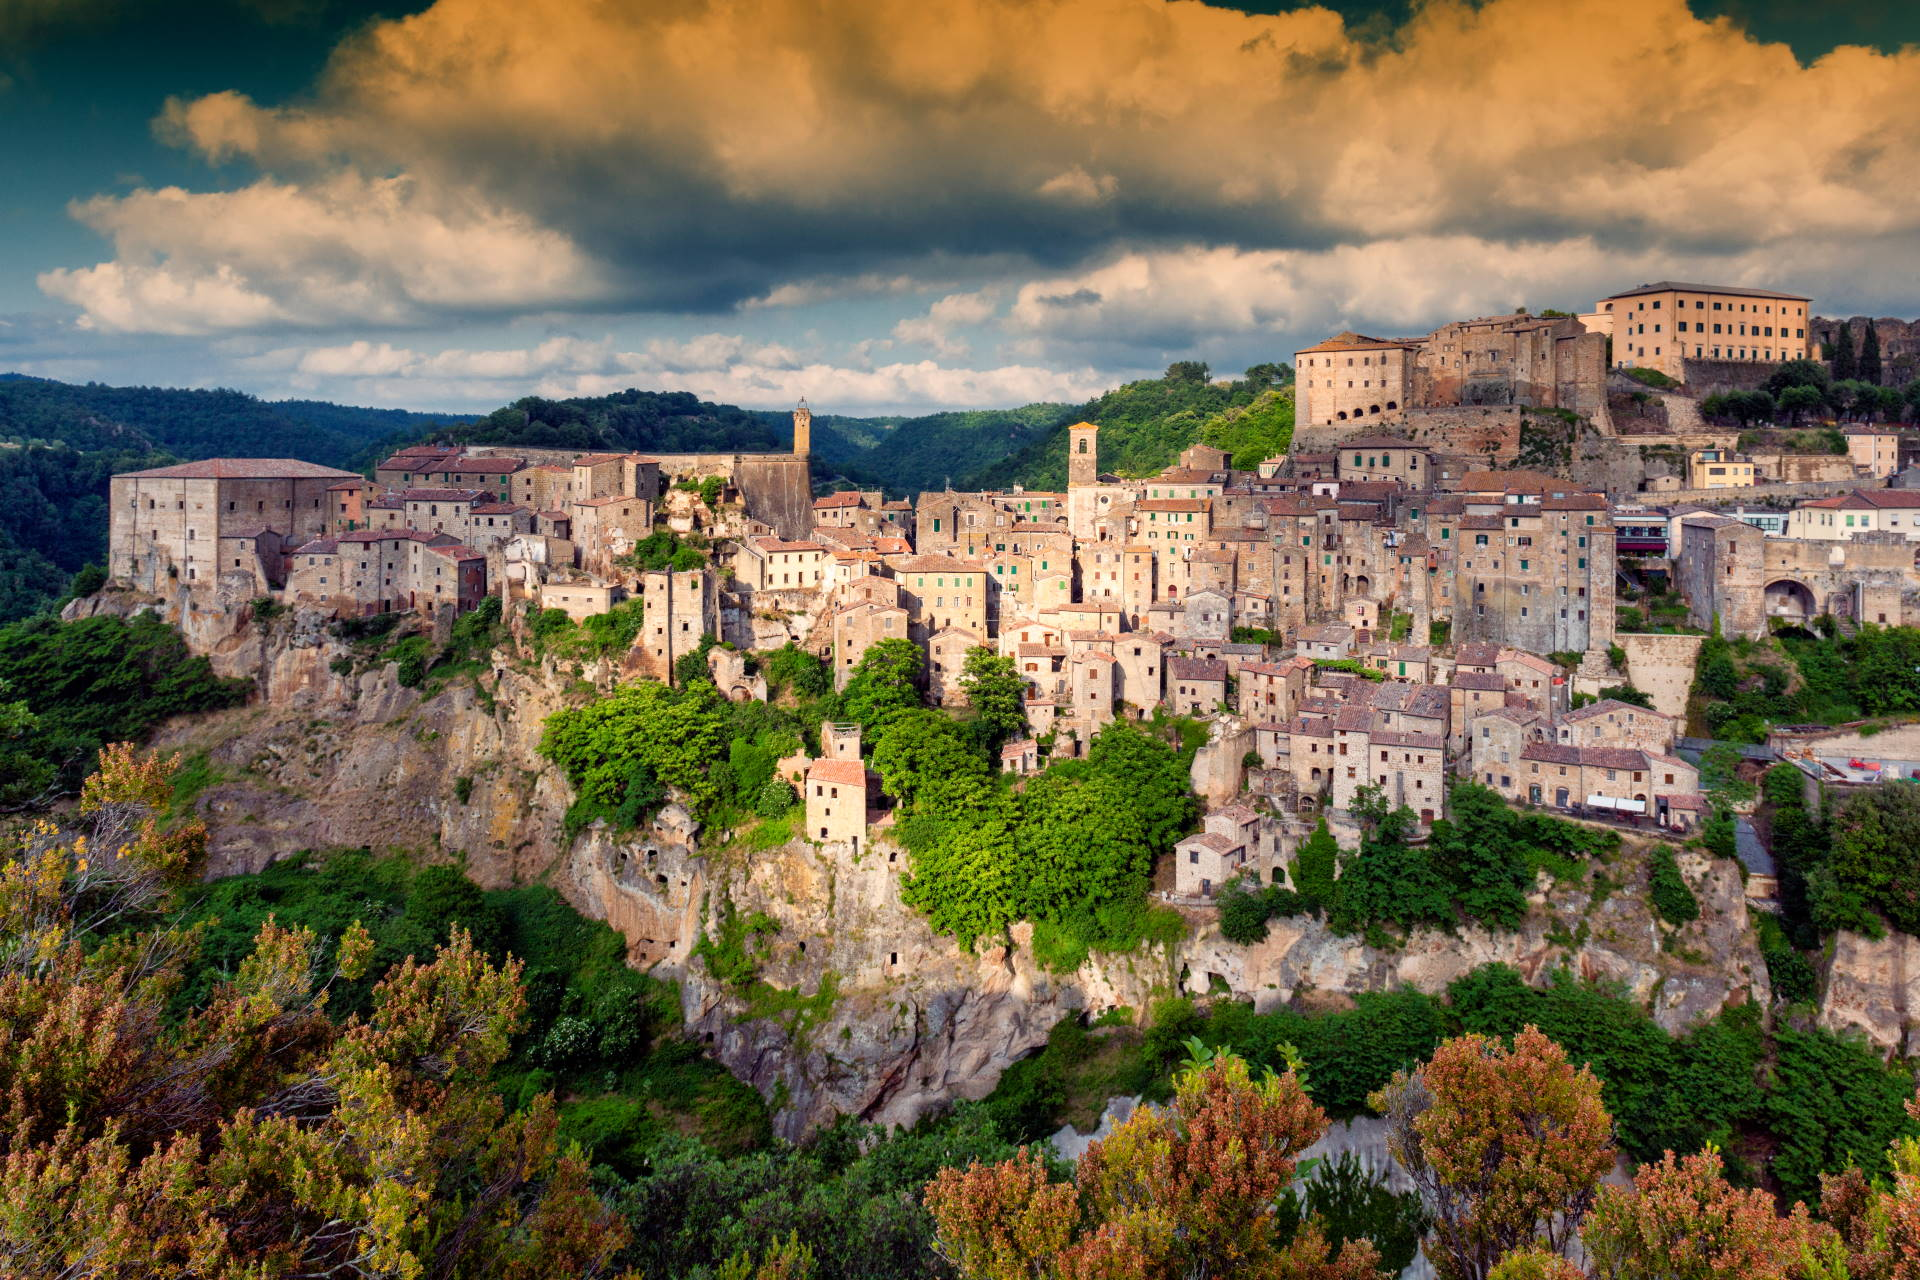 Canva - Village of Sorano